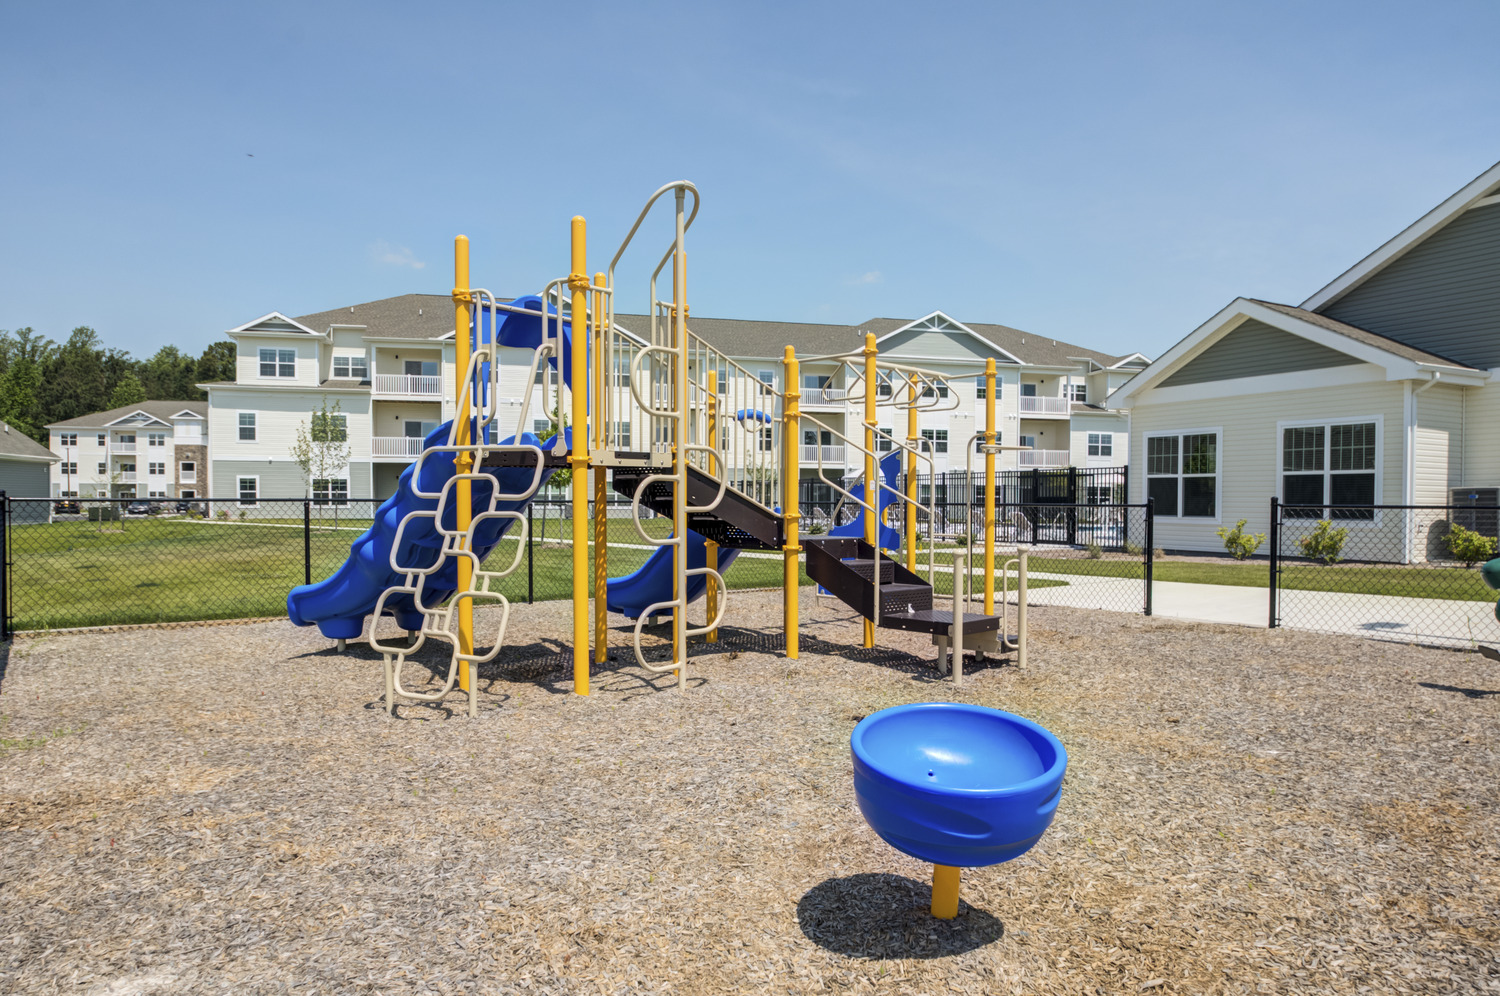 CBG builds Coventry Square, a Multi-Building Garden-Style Community with Amenities in Salisbury, MD - Image #5